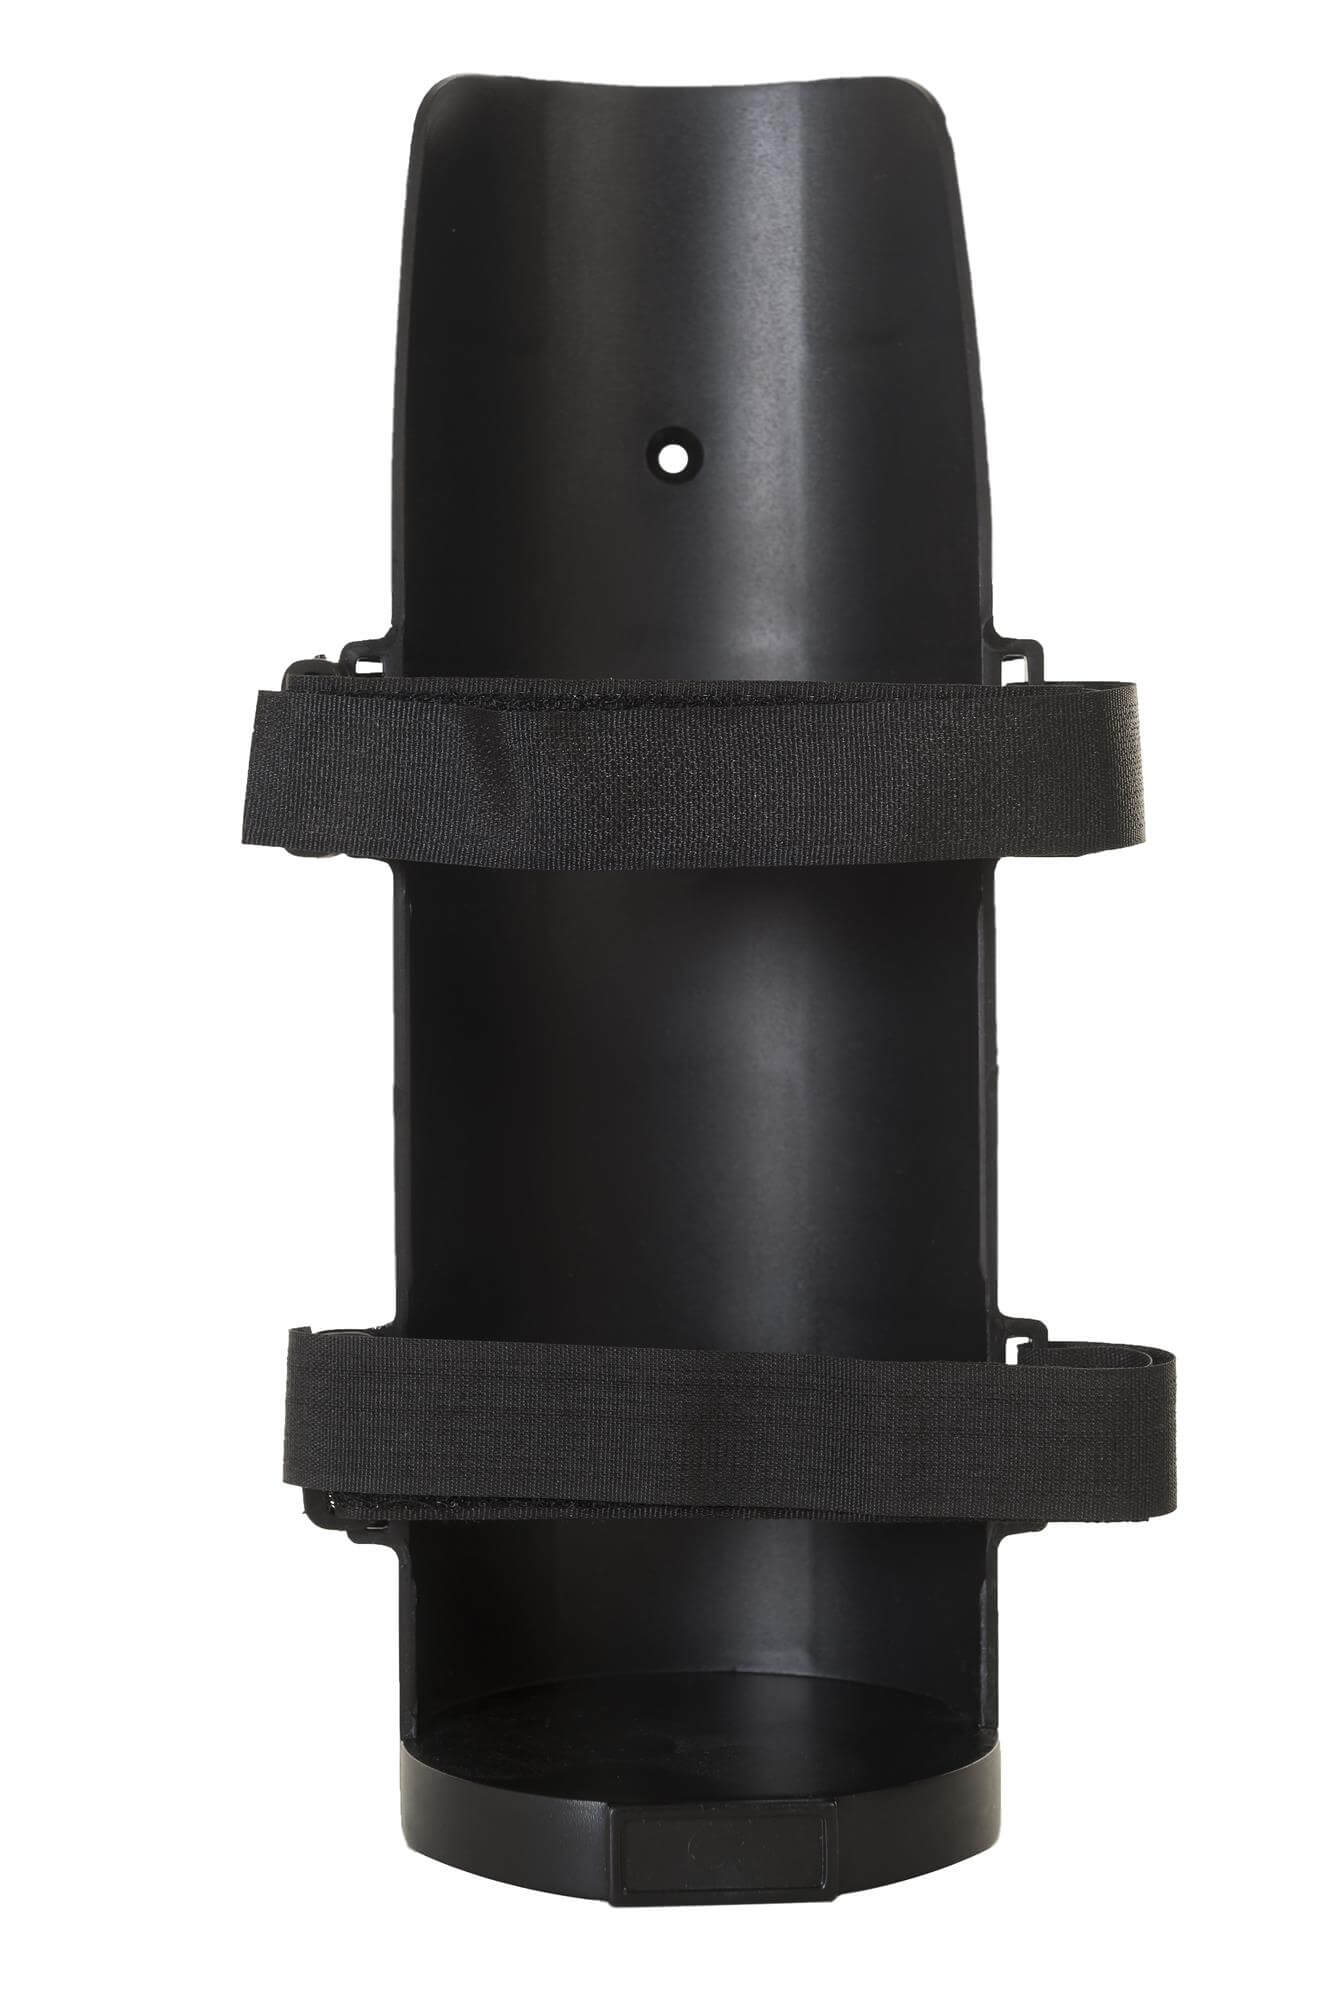 Wall mounted canister holder